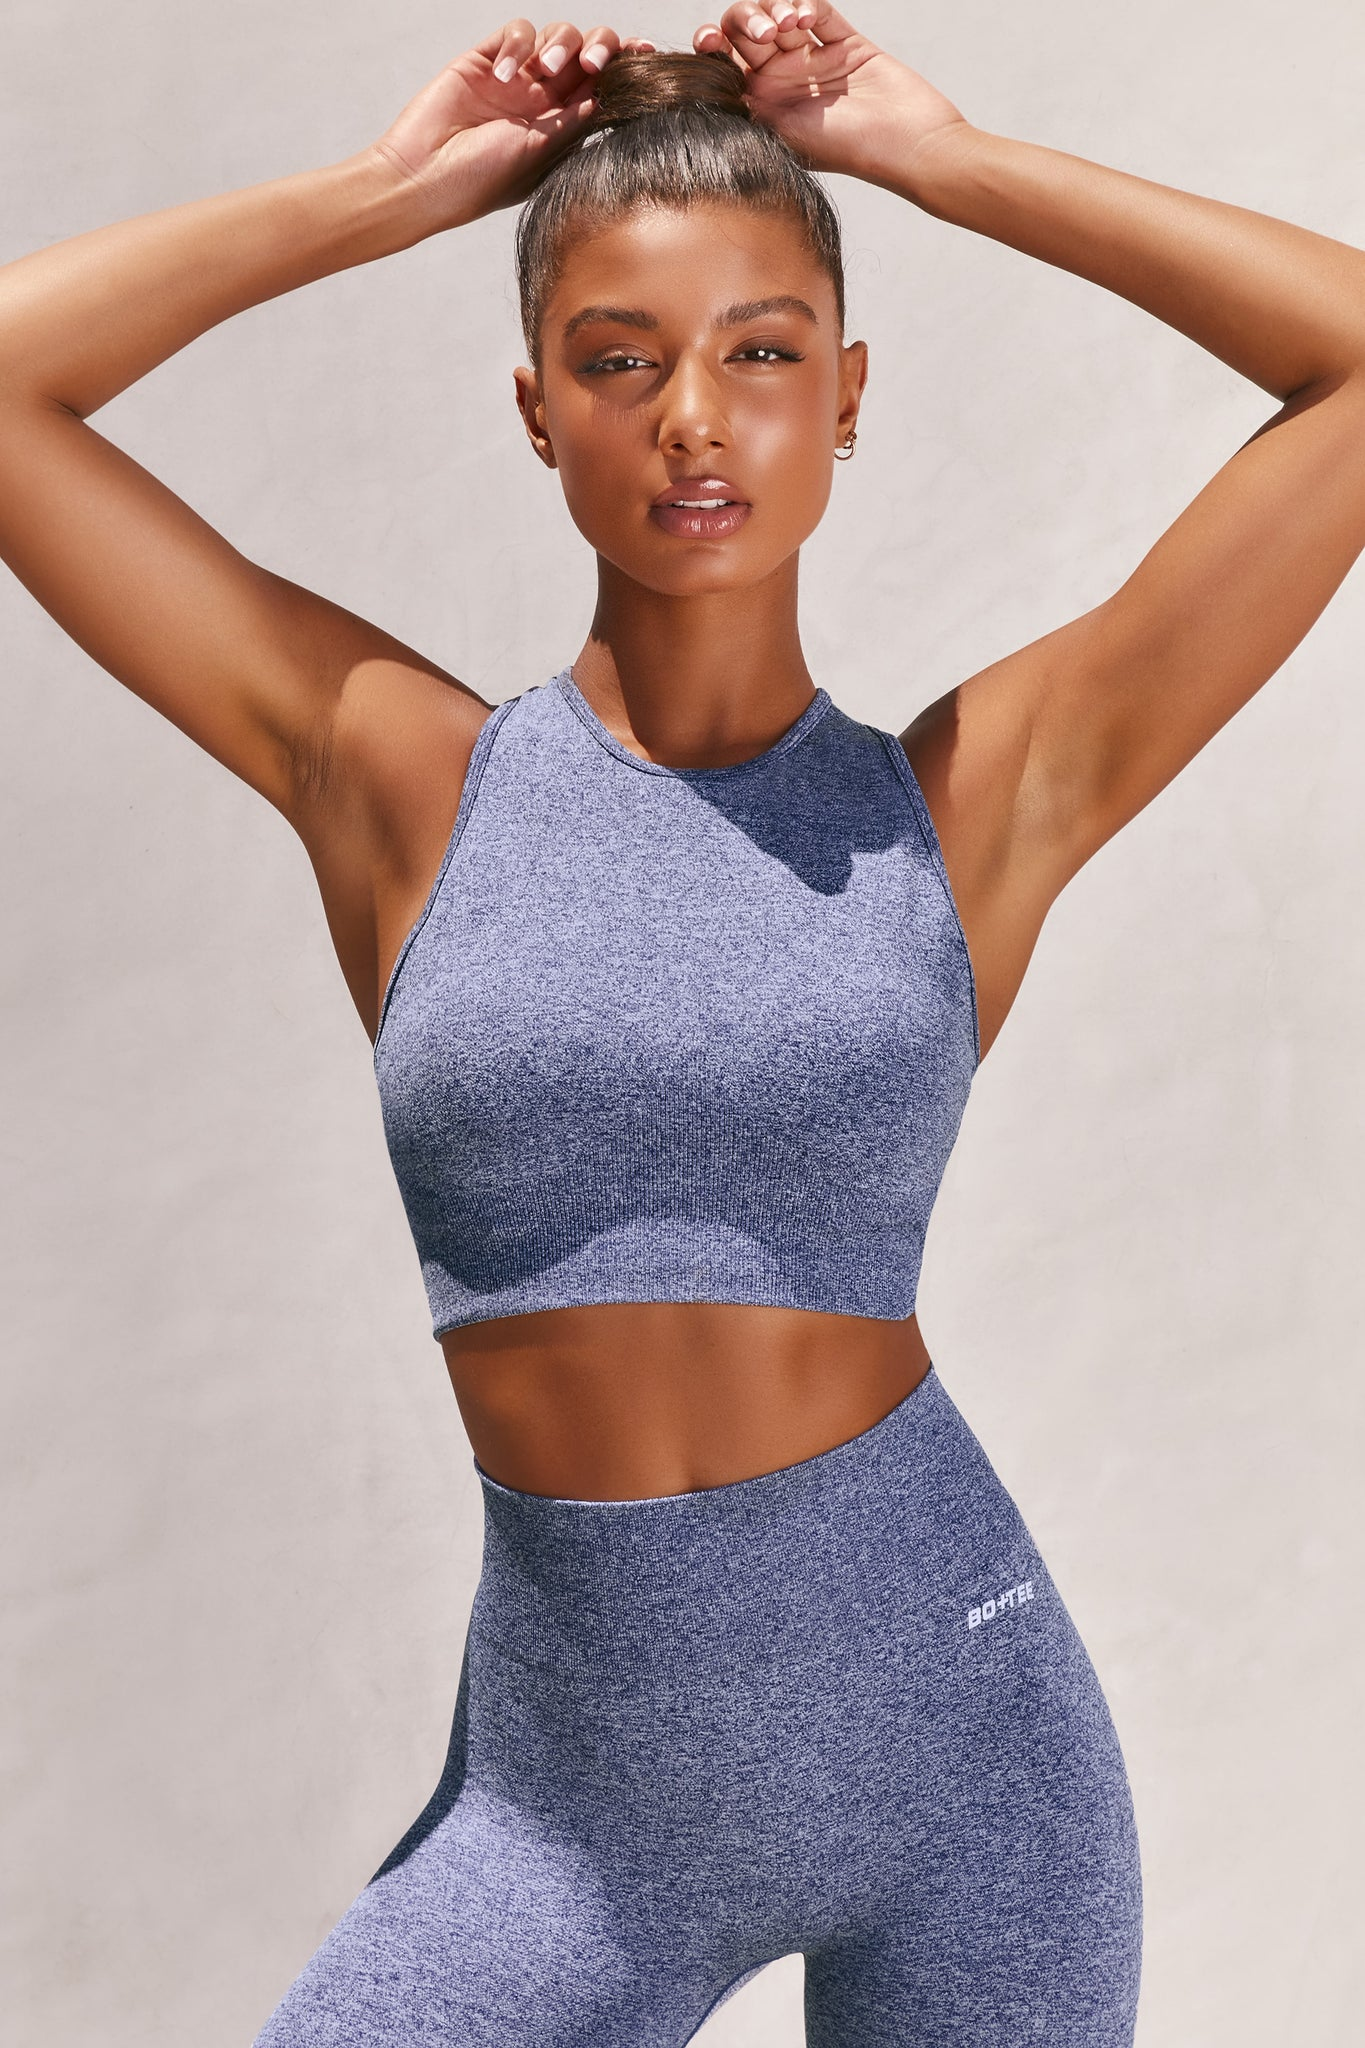 Plain navy marl high neck sleeveless crop top with ribbed underband and racer back. Image 1 of 6.